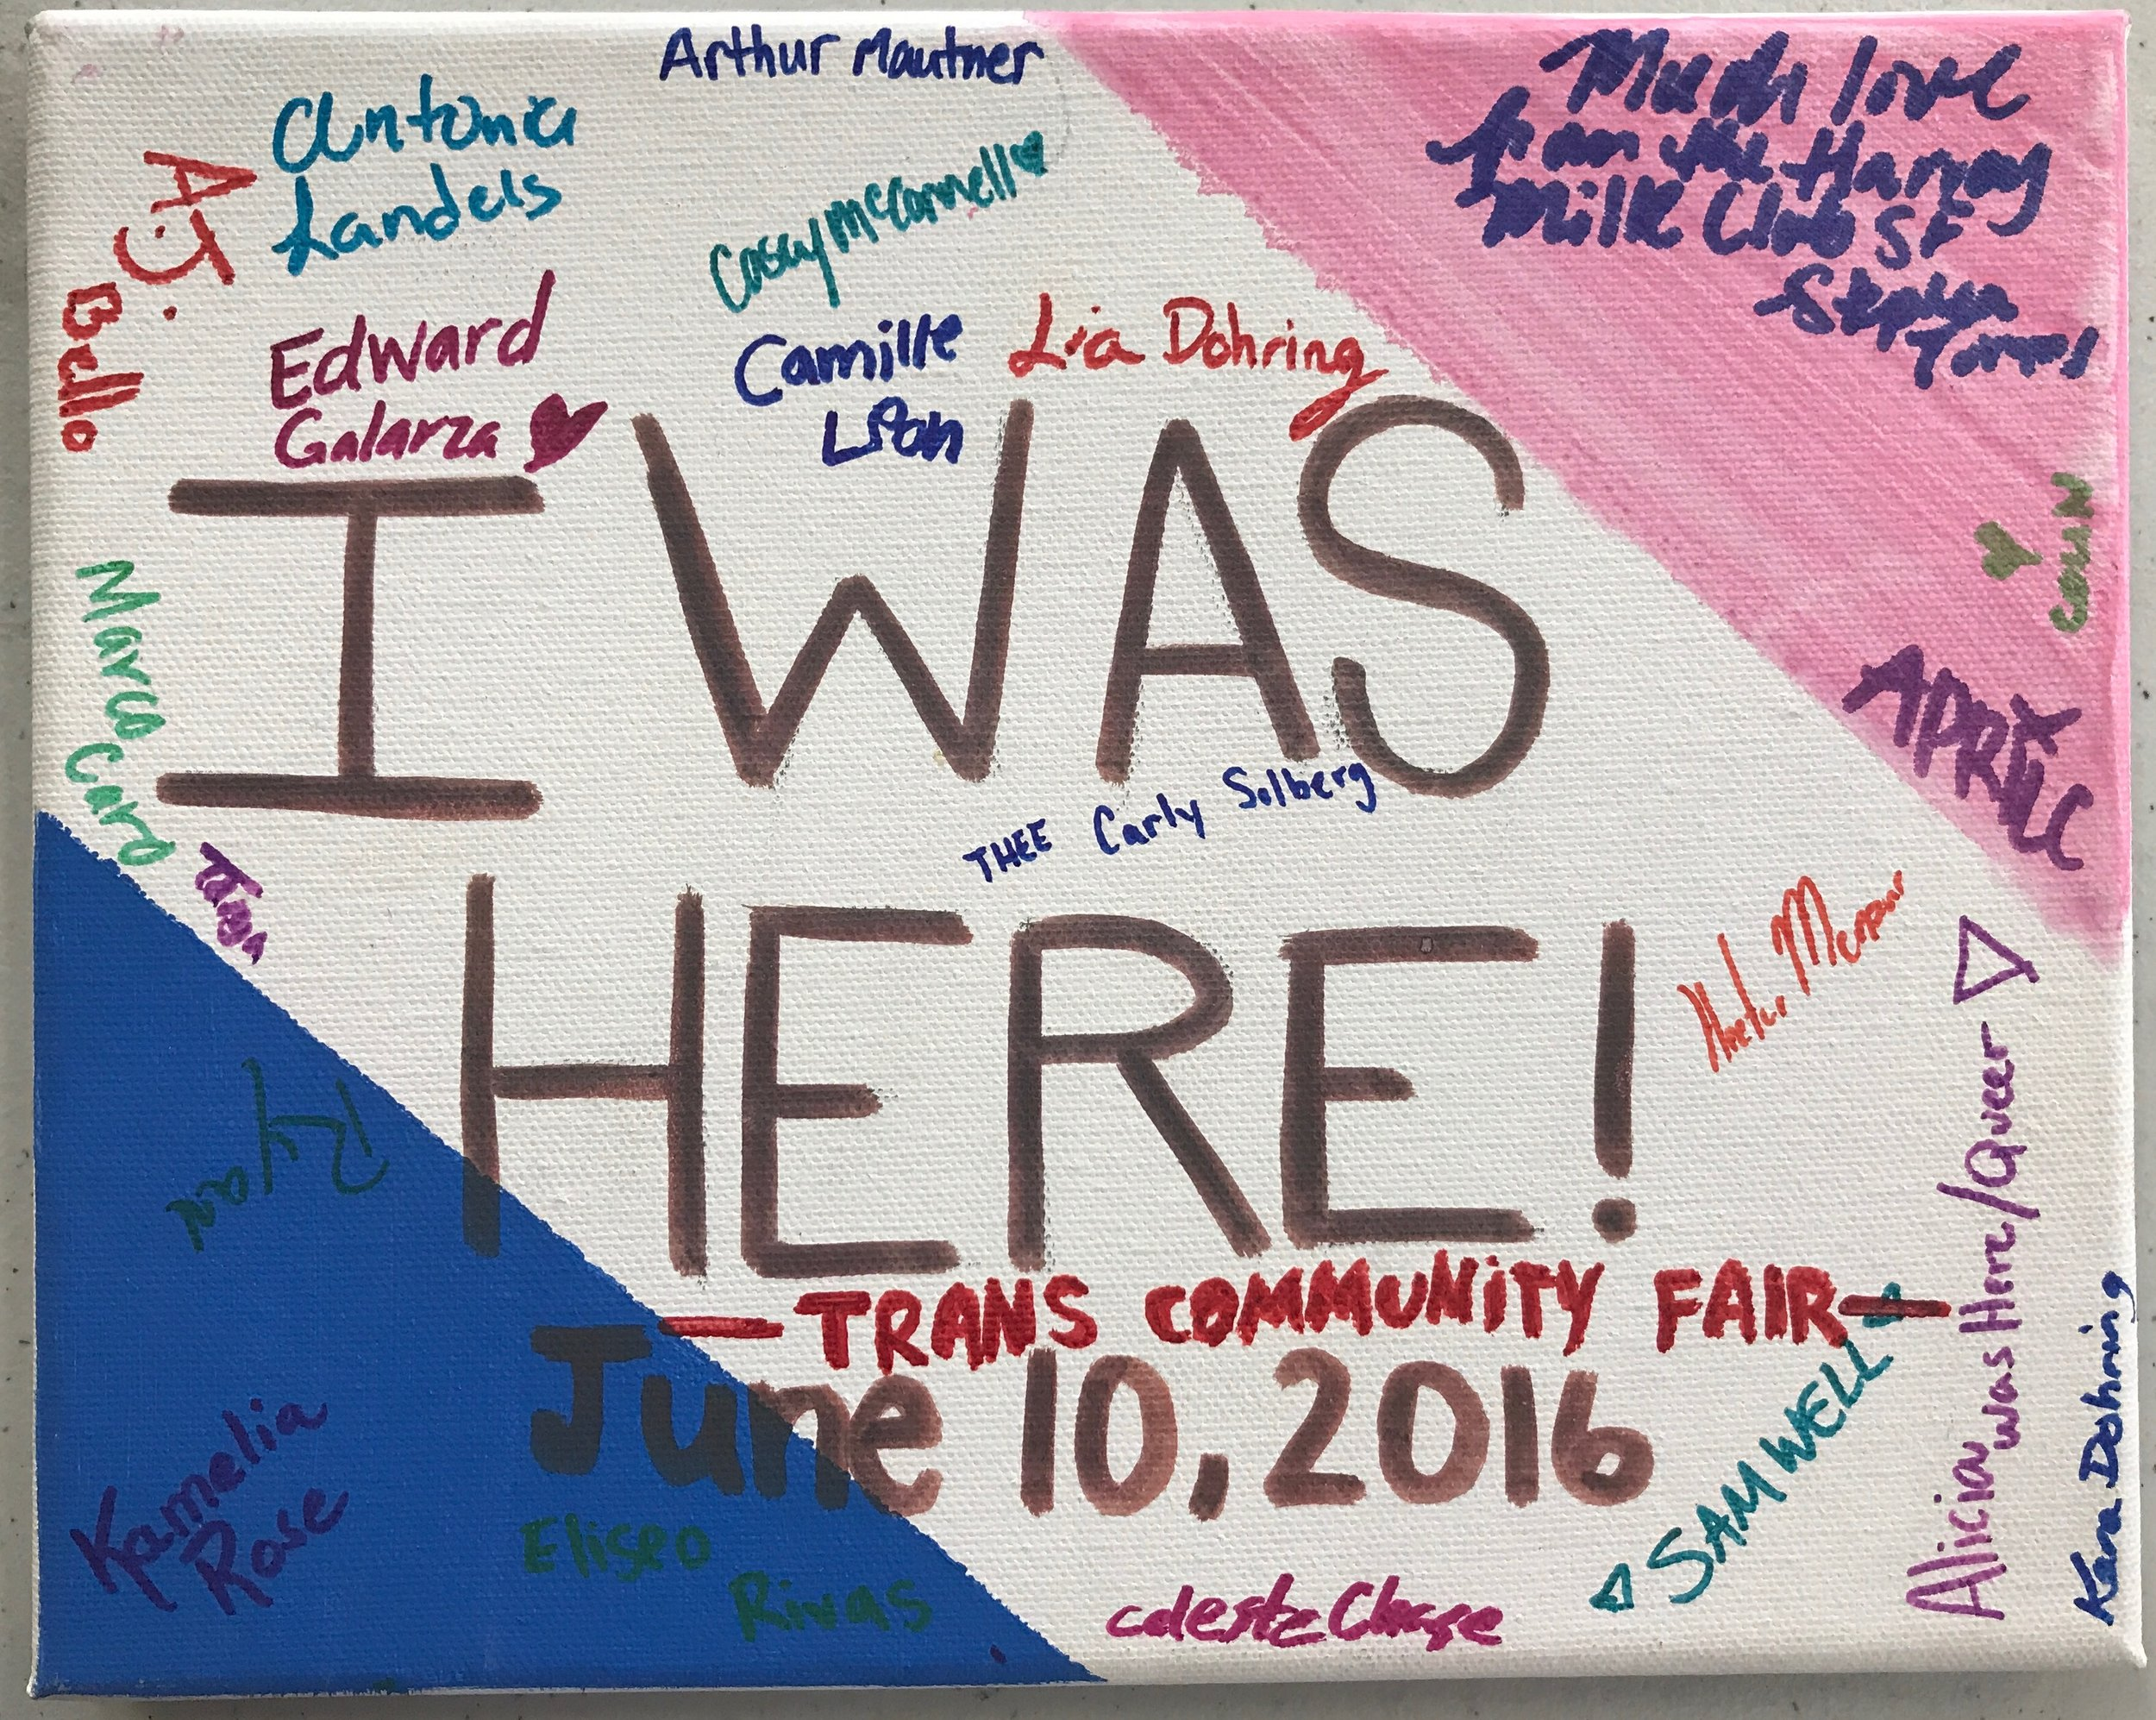 In 2016, with your financial support & volunteering, our youth leaders planned Napa County's 1st ever Trans Community Fair, which drew attendees from Napa, Sonoma, and Solano counties! This canvas includes the names of some of the folks who attended the innagural event.